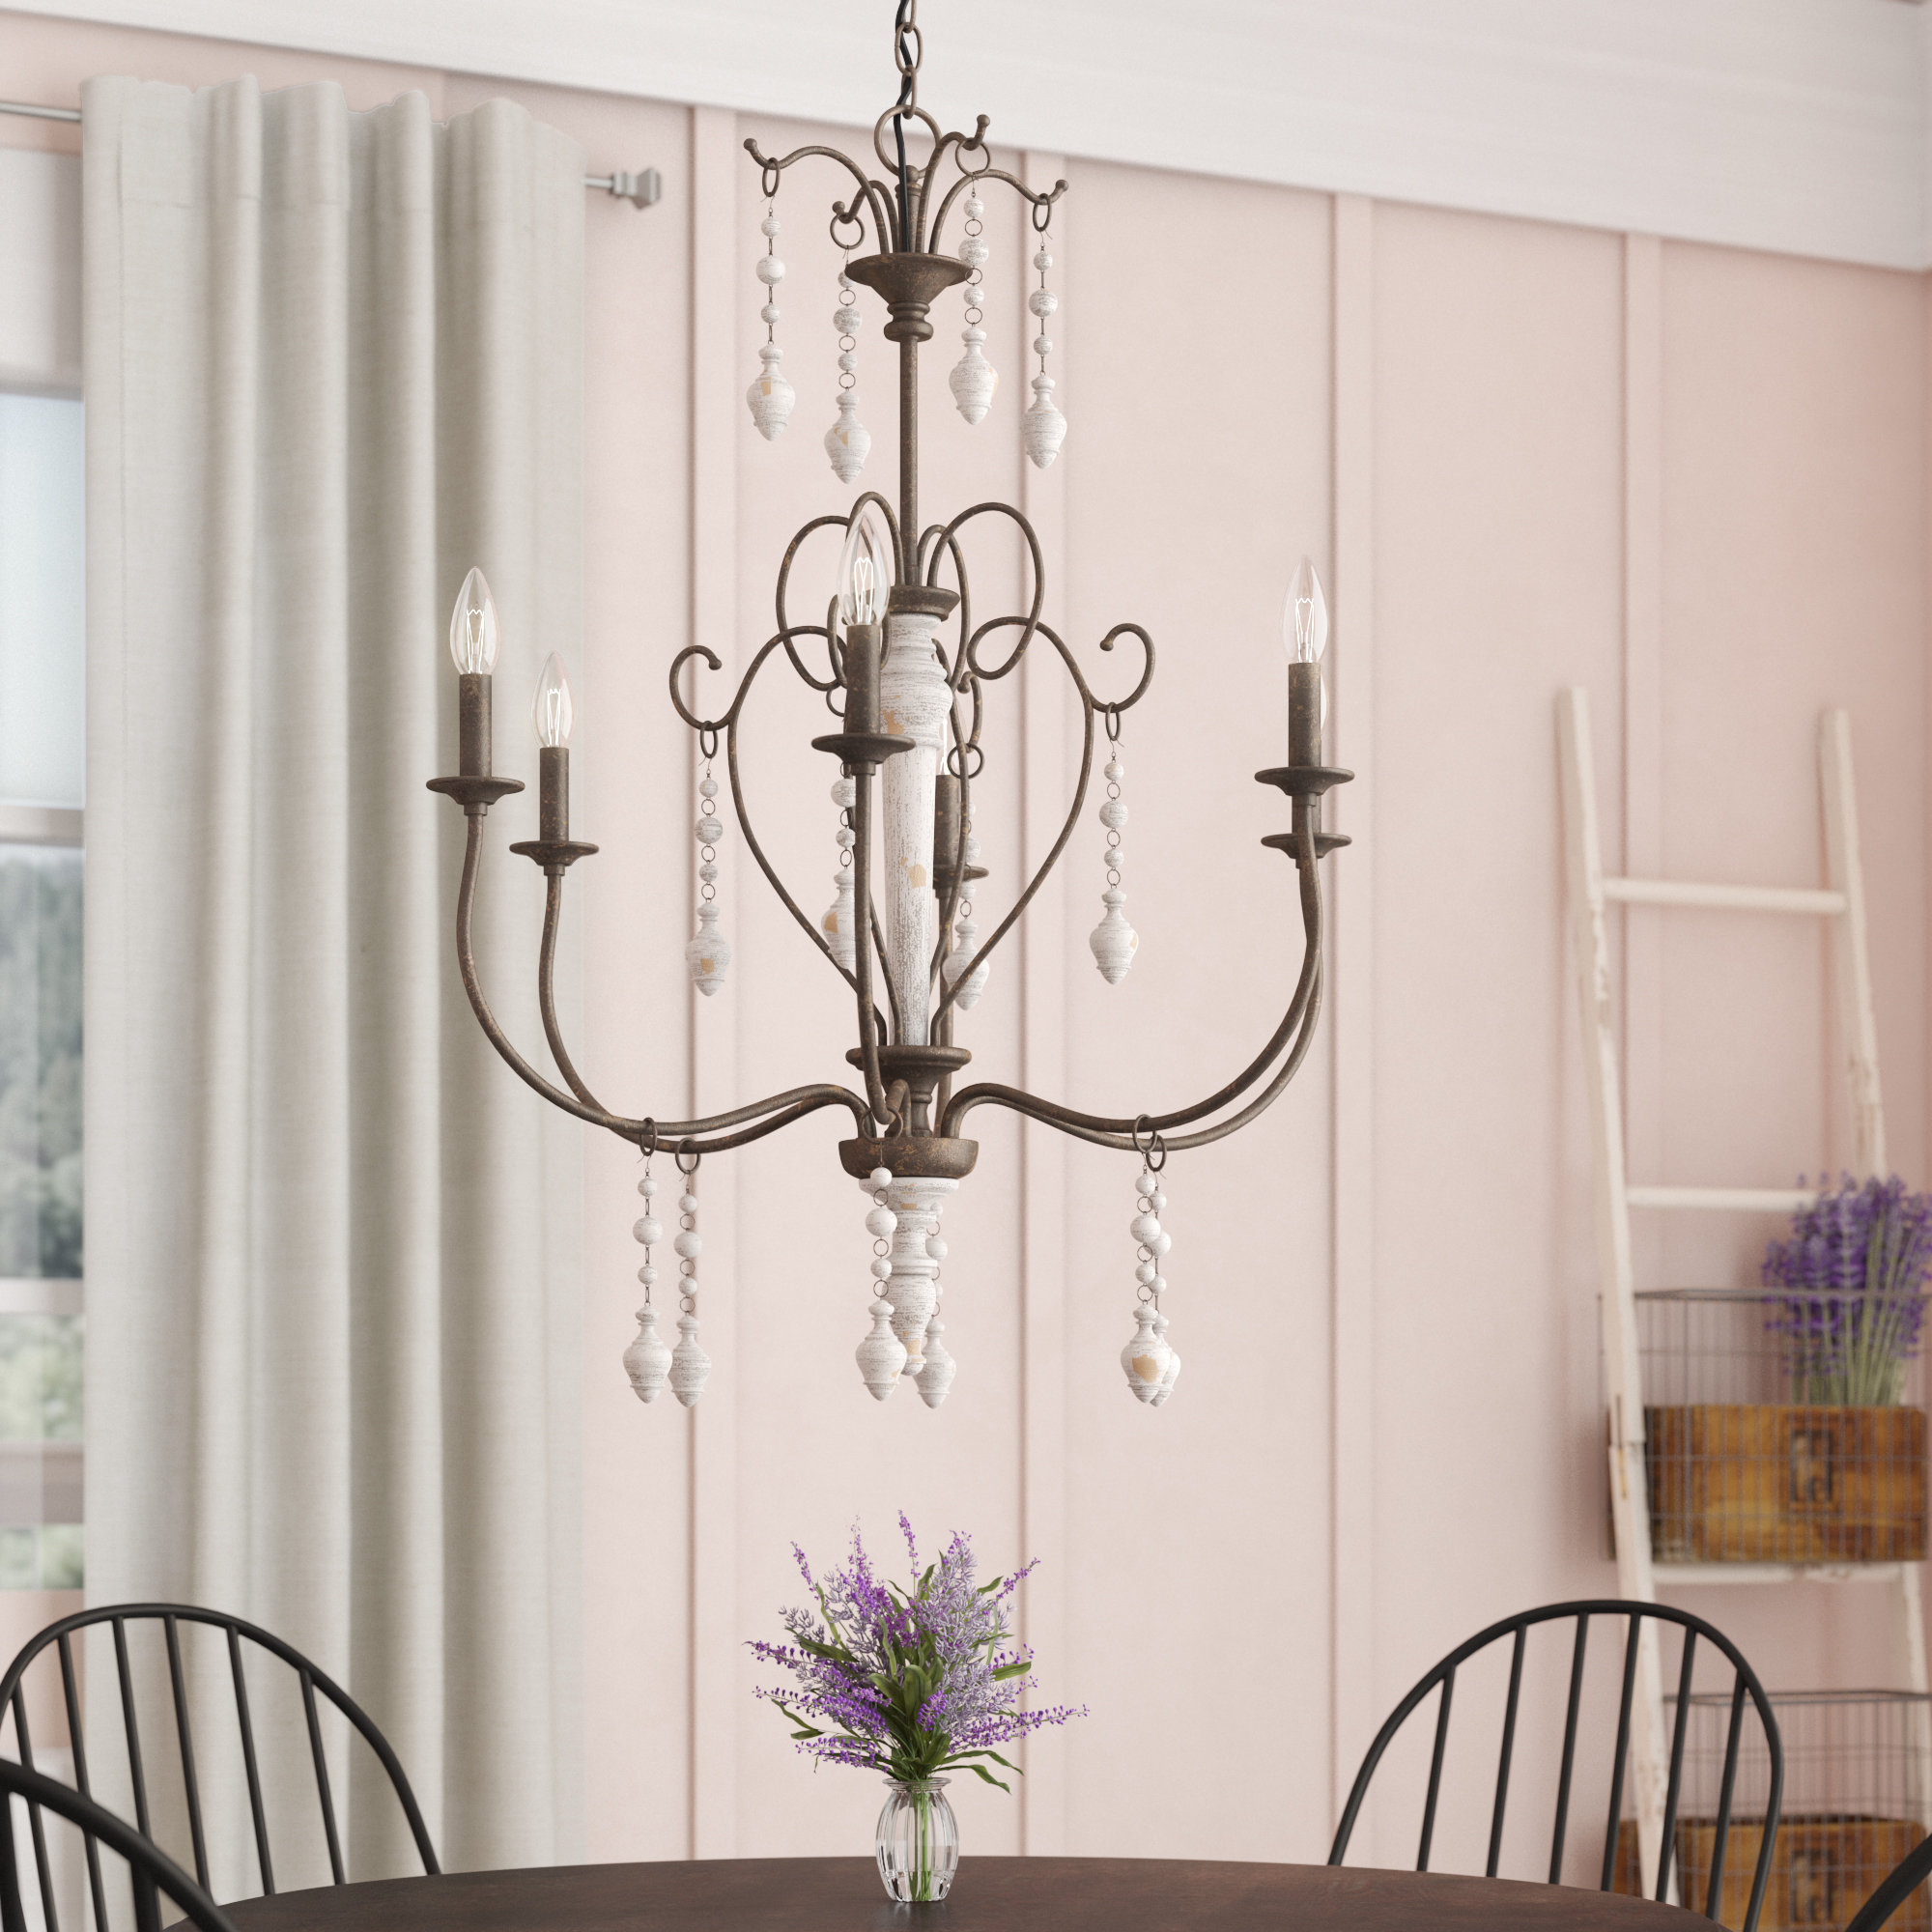 Lark Manor Bouchette Traditional 6 Light Candle Style Intended For Most Current Bouchette Traditional 6 Light Candle Style Chandeliers (View 11 of 20)